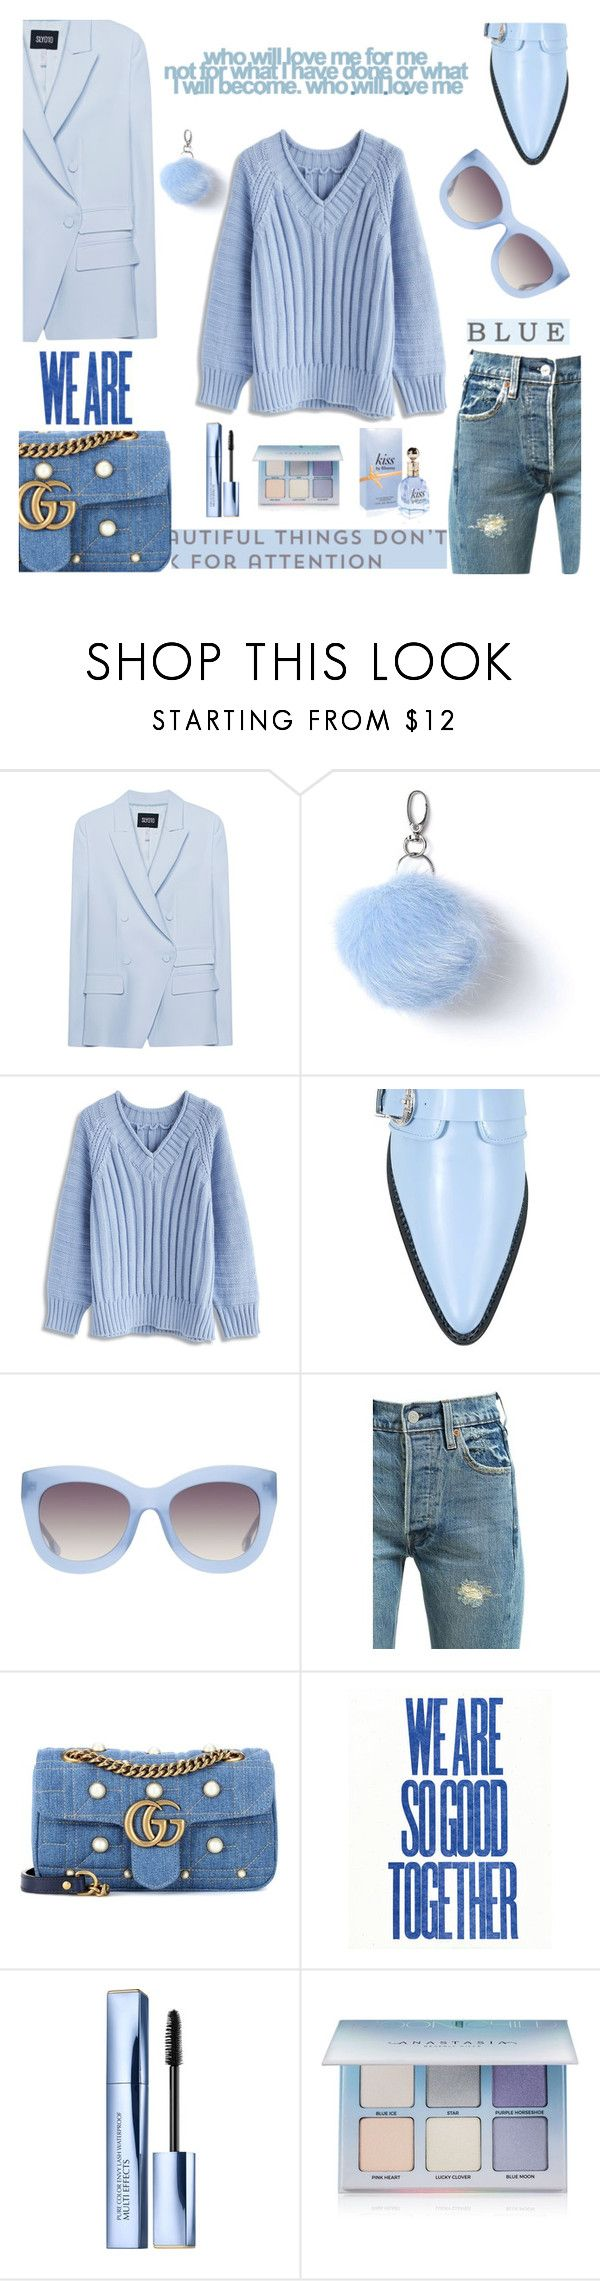 """Blue words"" by alexandrapitol ❤ liked on Polyvore featuring SLY 010, Miss Selfridge, Chicwish, Carven, Alice + Olivia, Levi's, Gucci, Estée Lauder and Anastasia Beverly Hills"